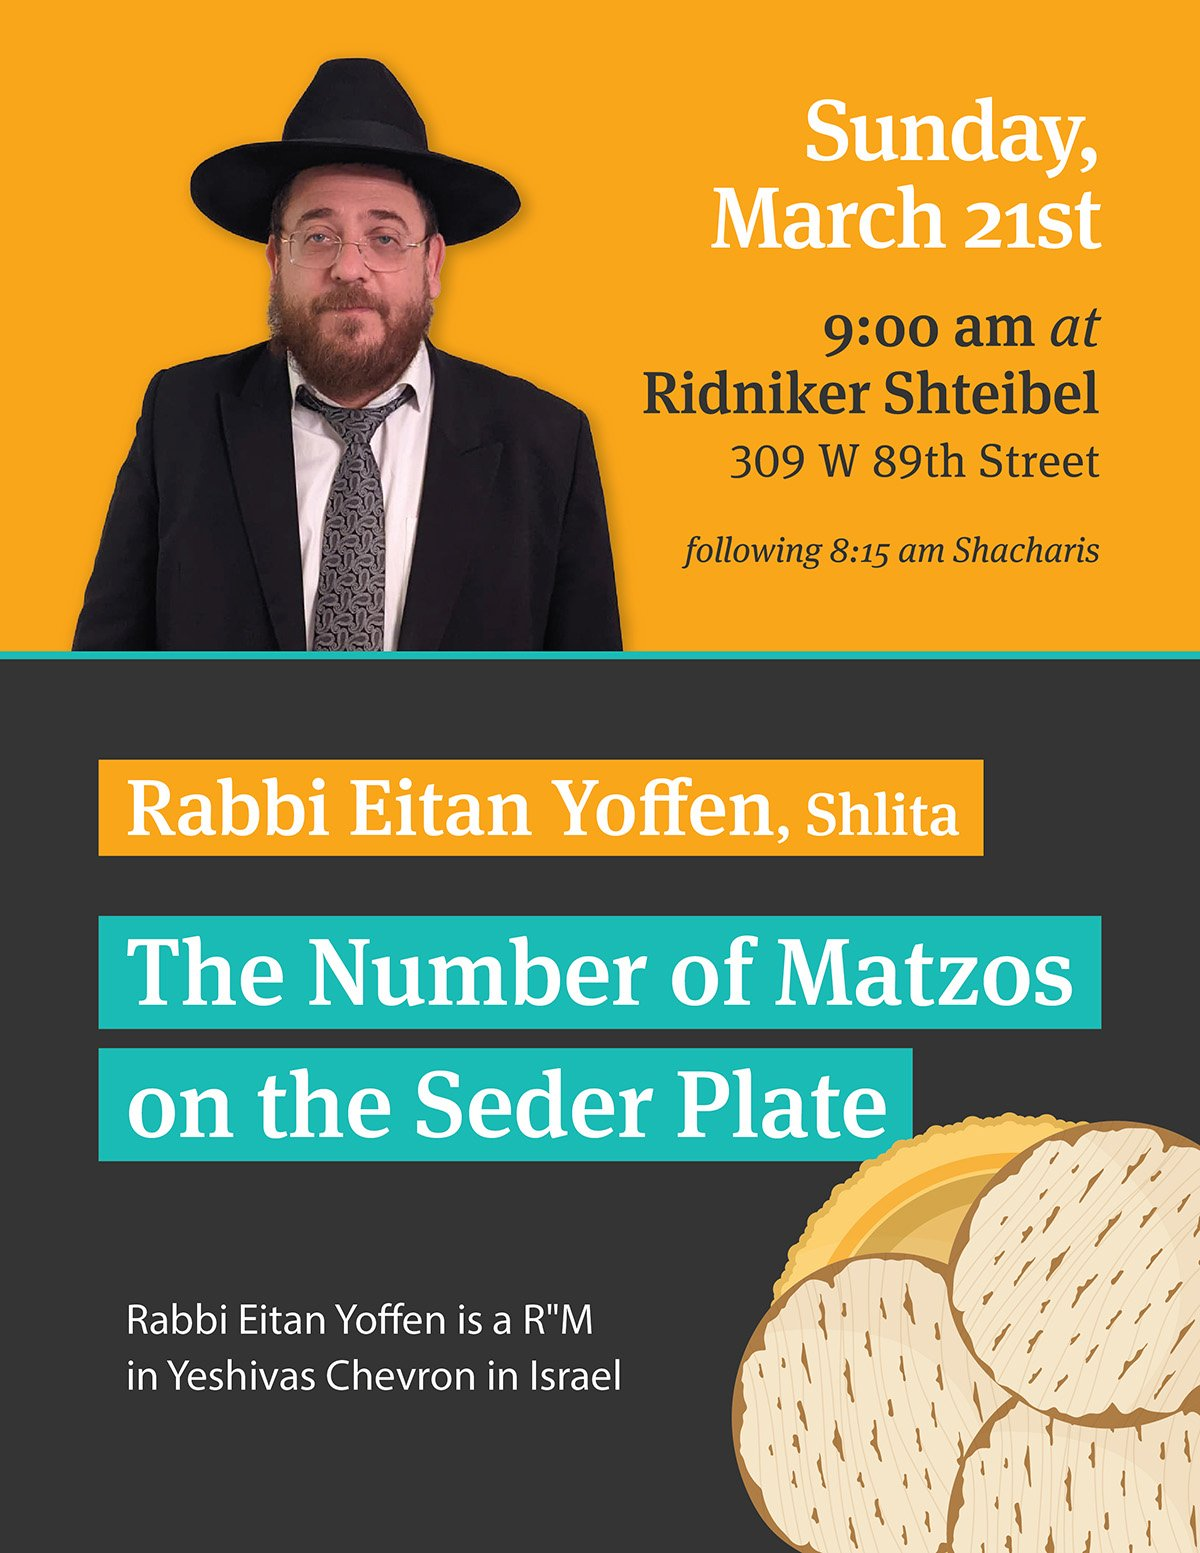 Rabbi Eitan Yoffen